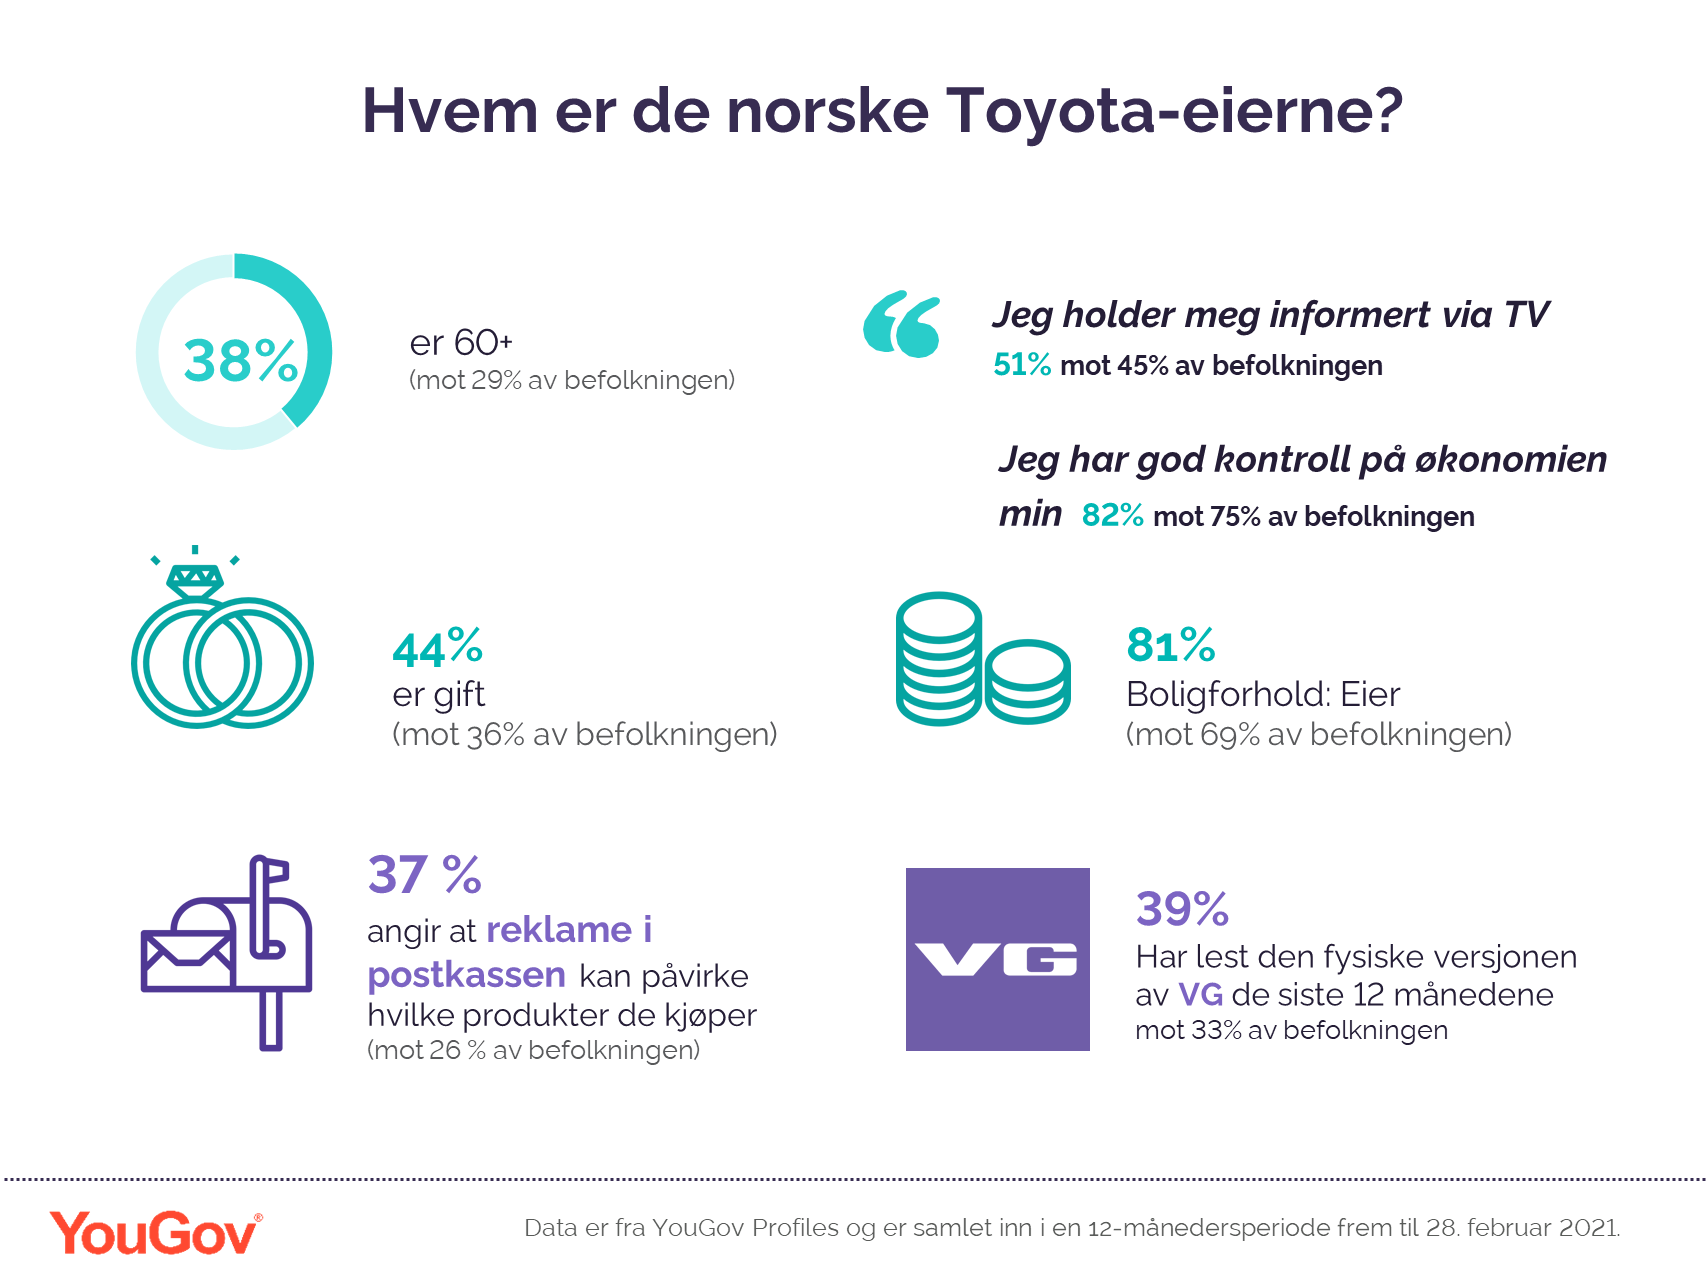 Toyota owners in Norway